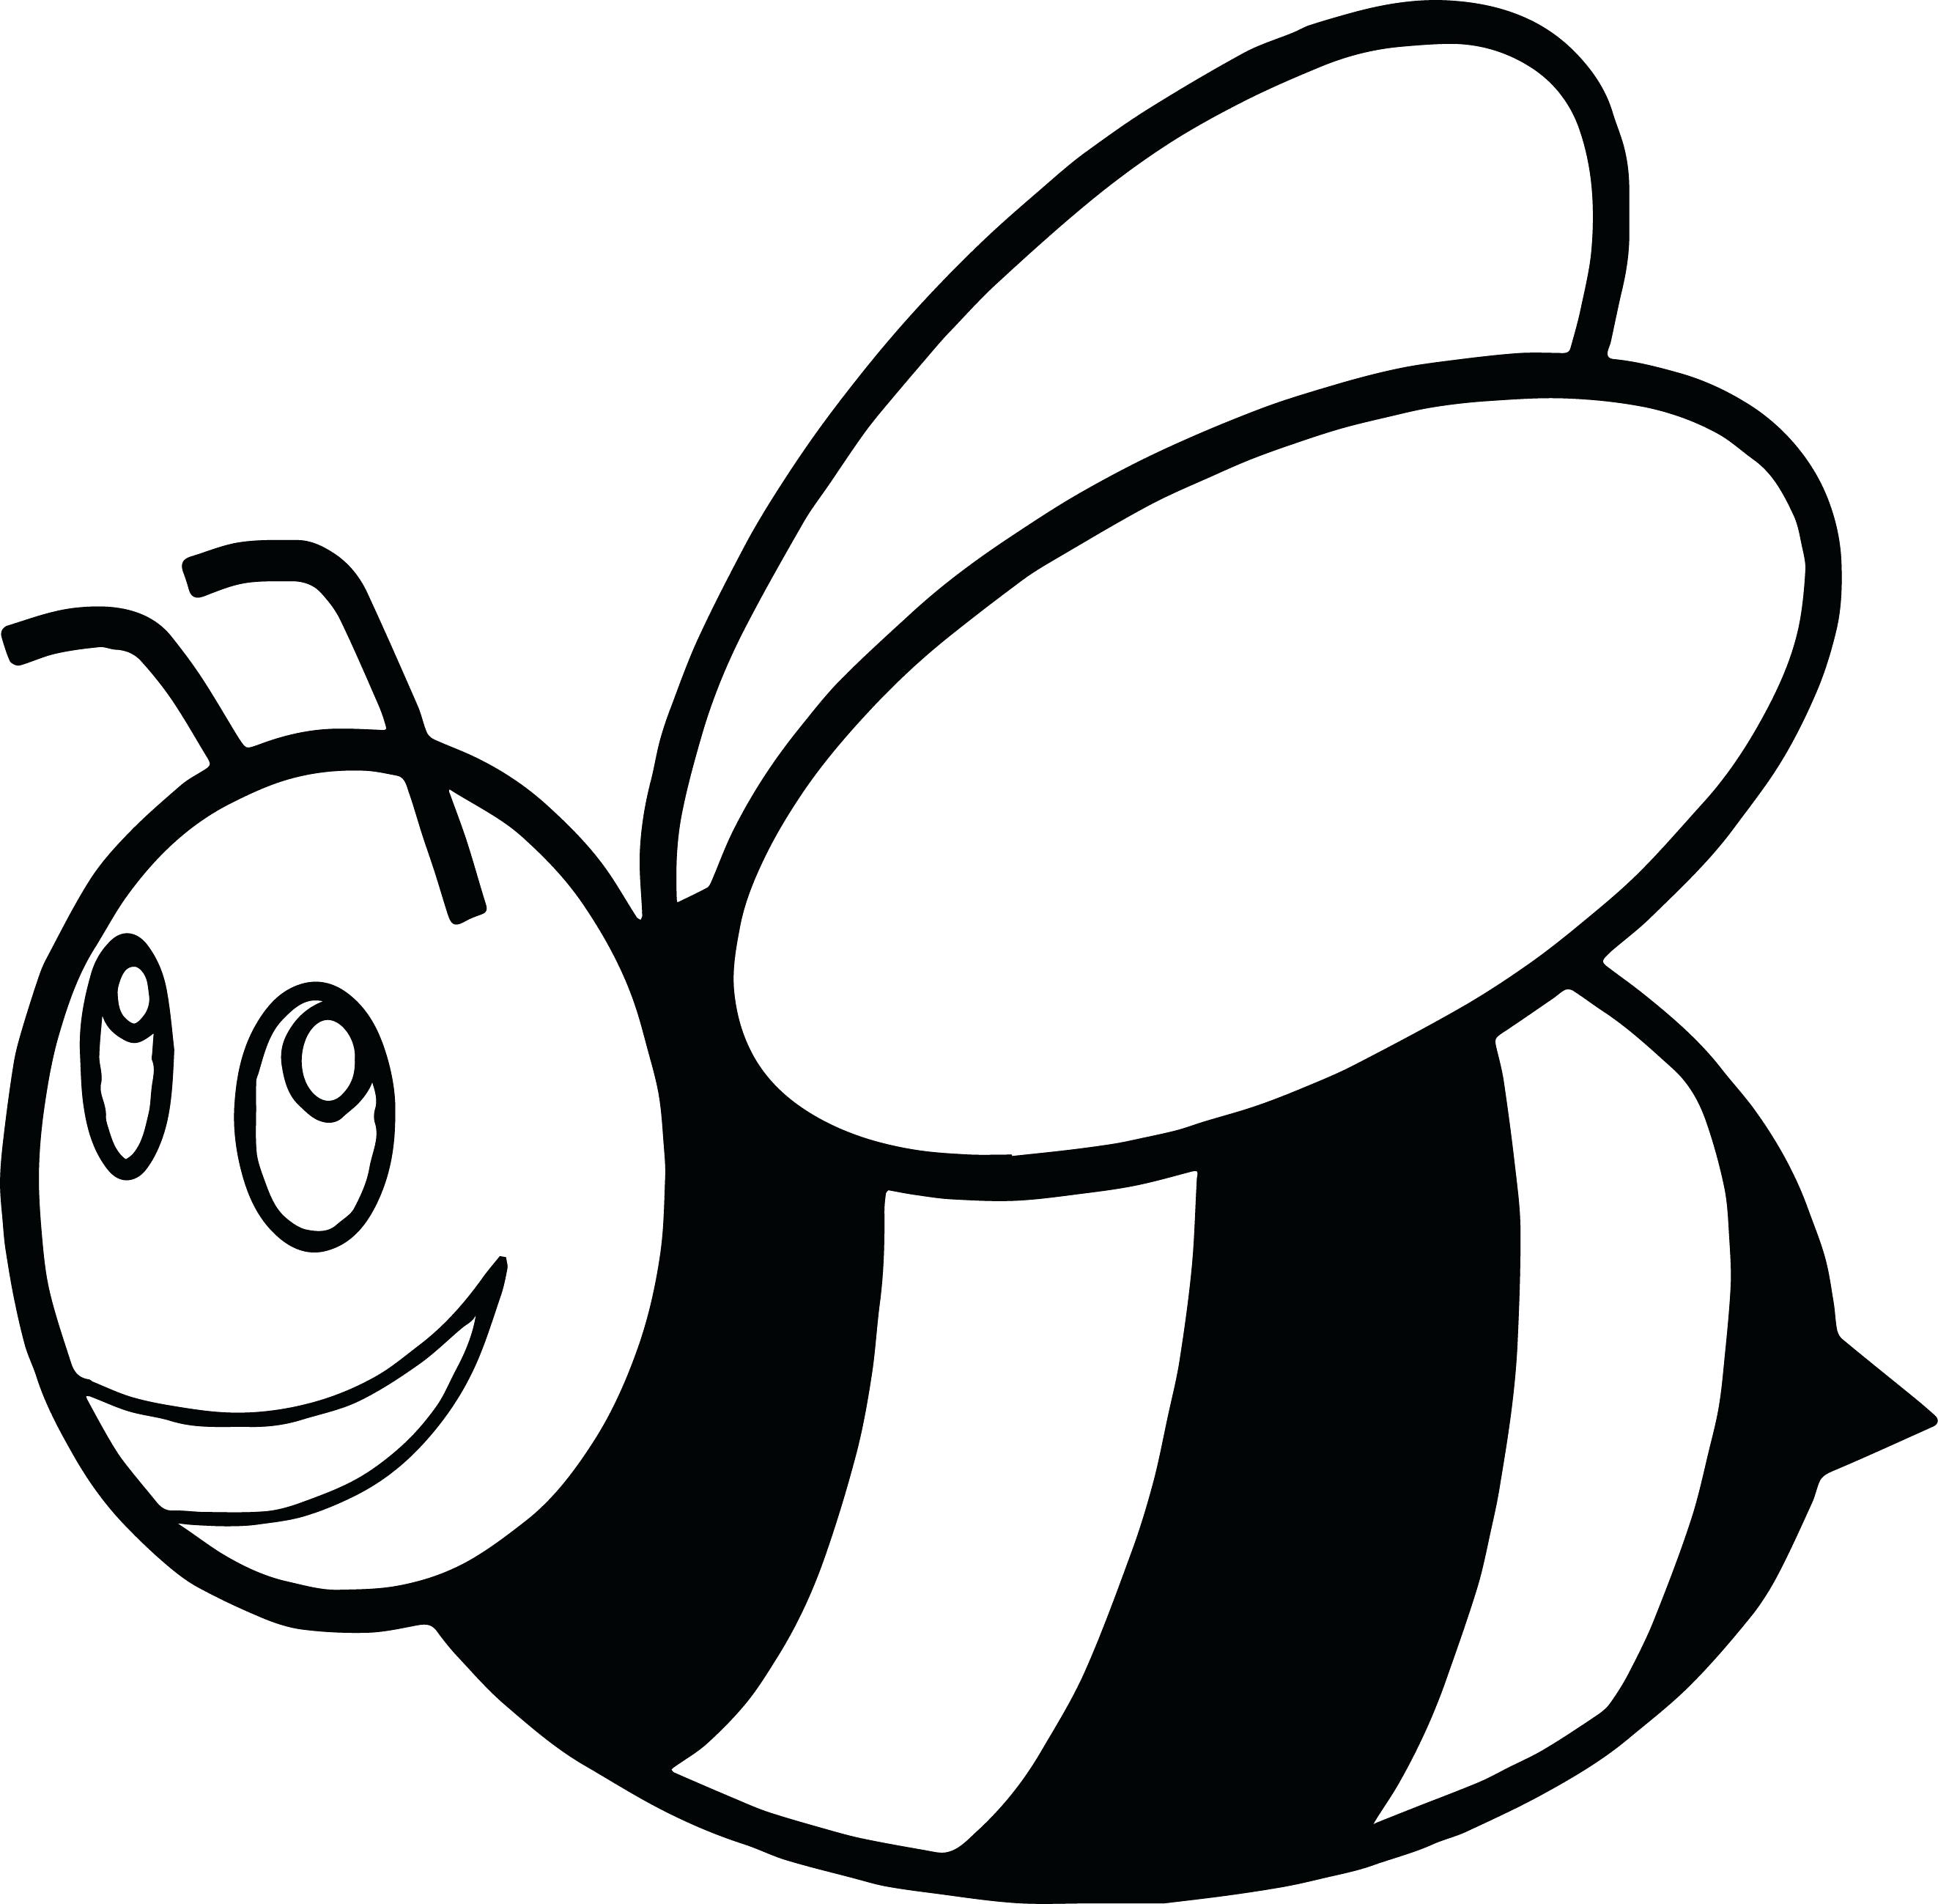 Adaptable image with regard to bumble bee printable